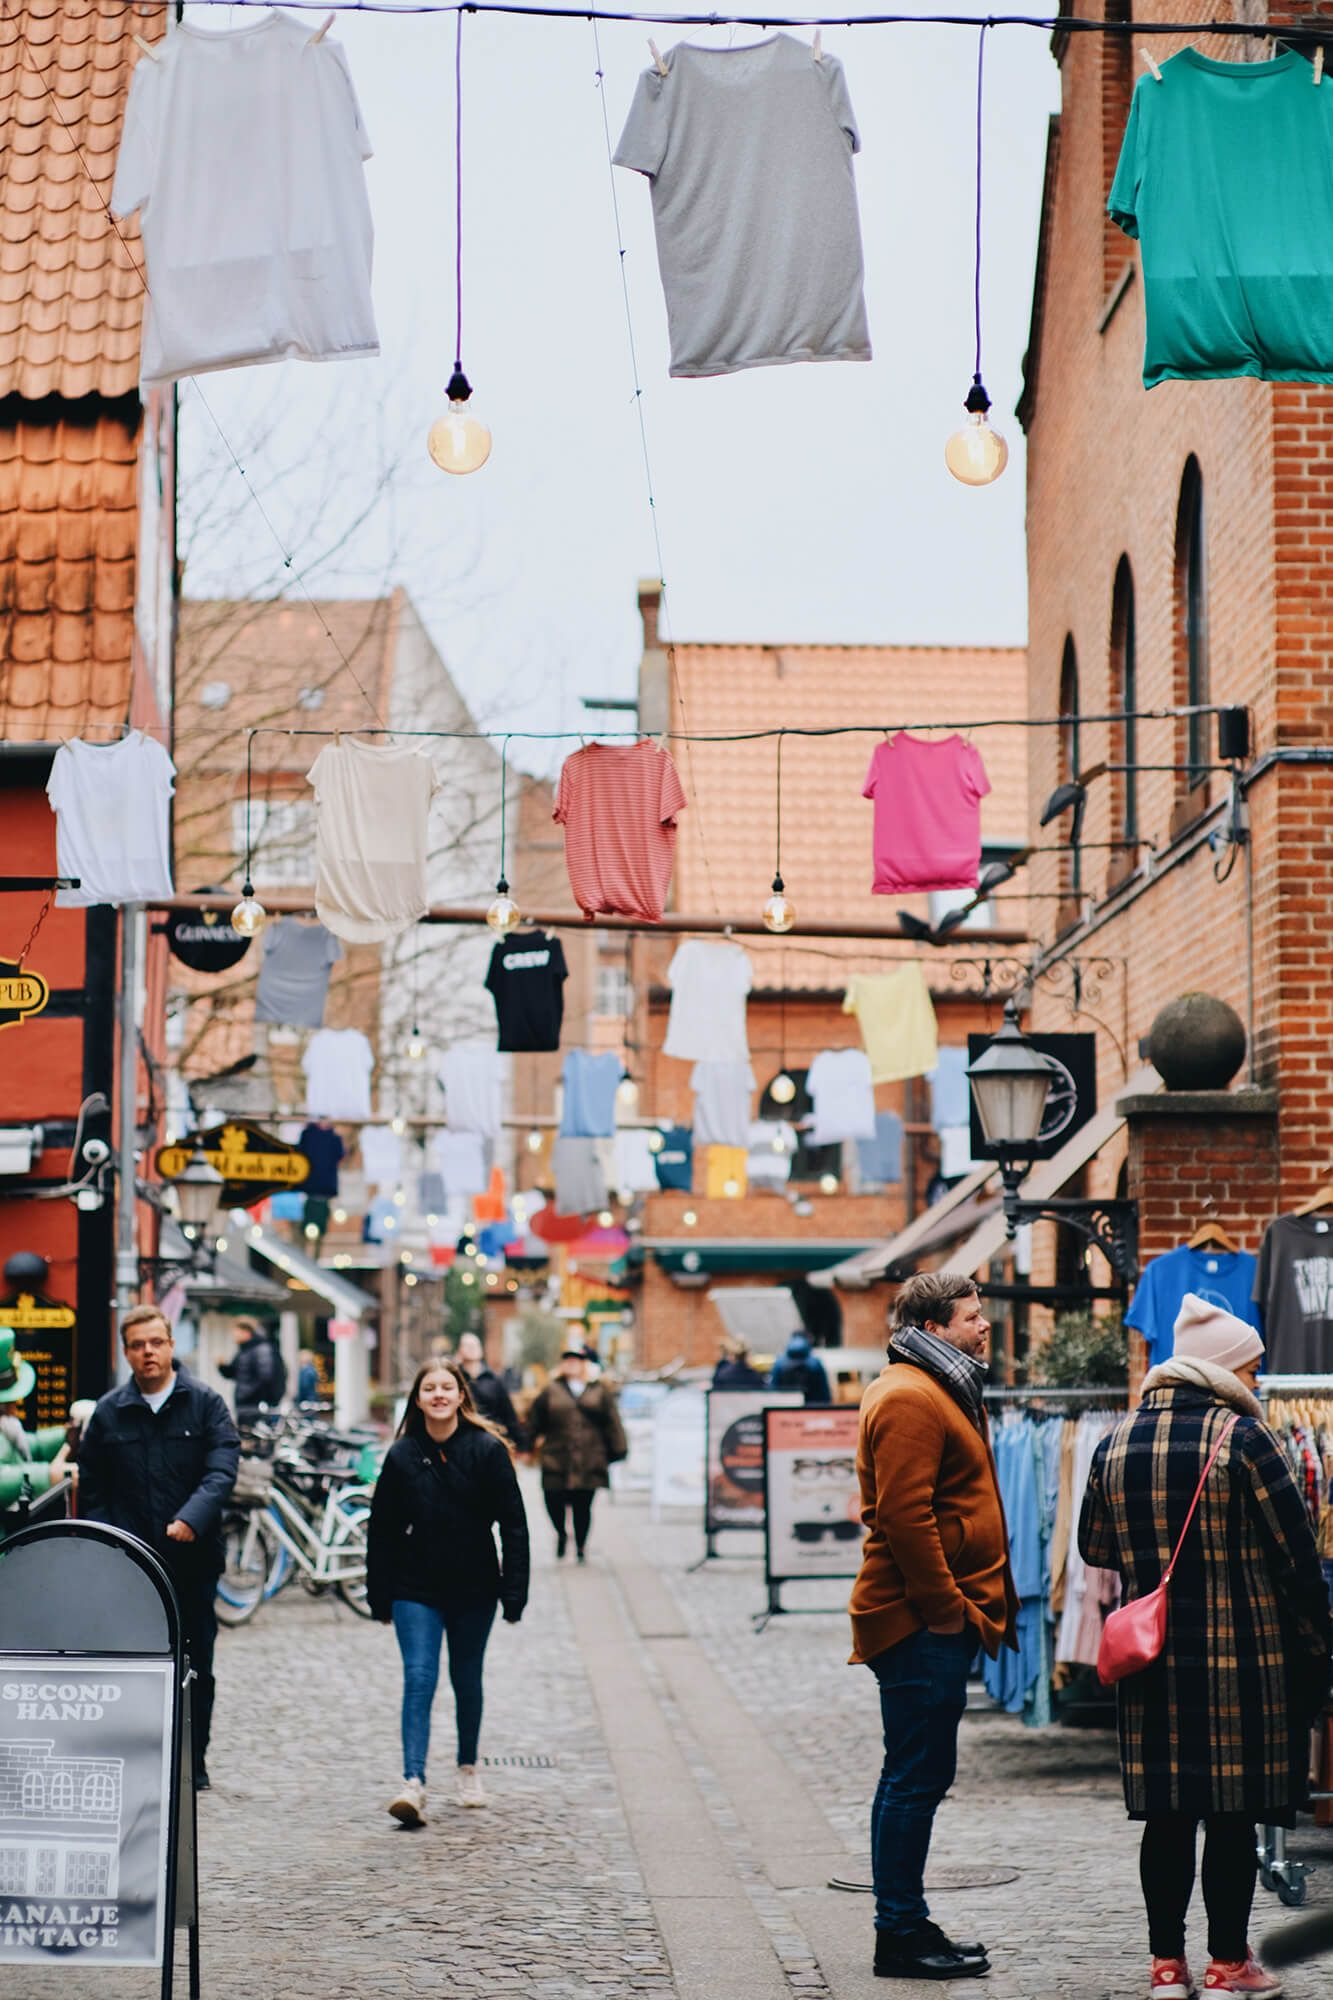 Lasse says that Odense is the embodiment of the word hygge. 'It's very cosy and relaxed, not as crowded or fast-paced as Copenhagen or Aarhus'